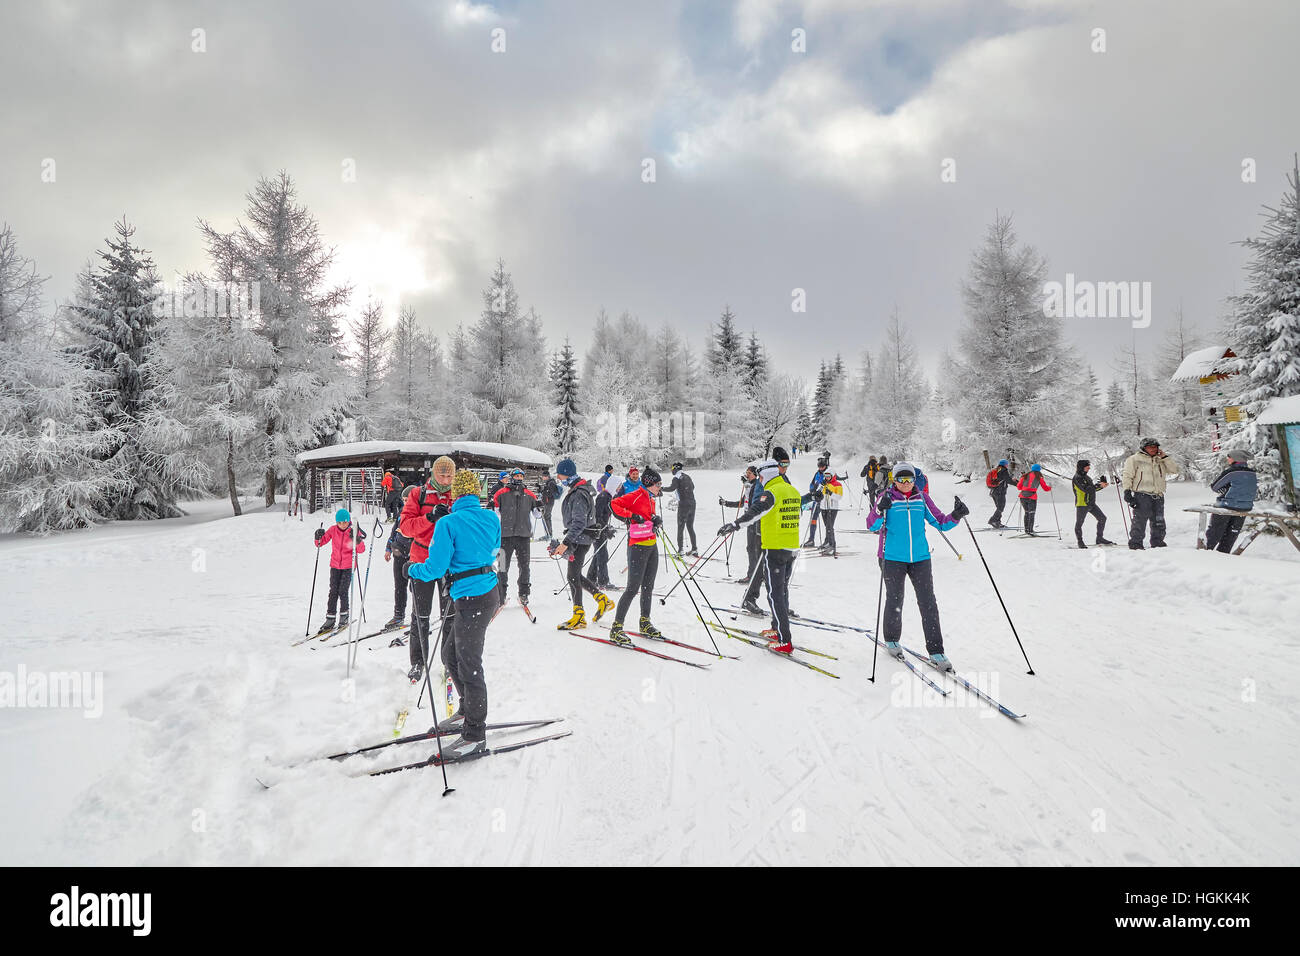 Cross-country skiers resting on trails intersection. - Stock Image